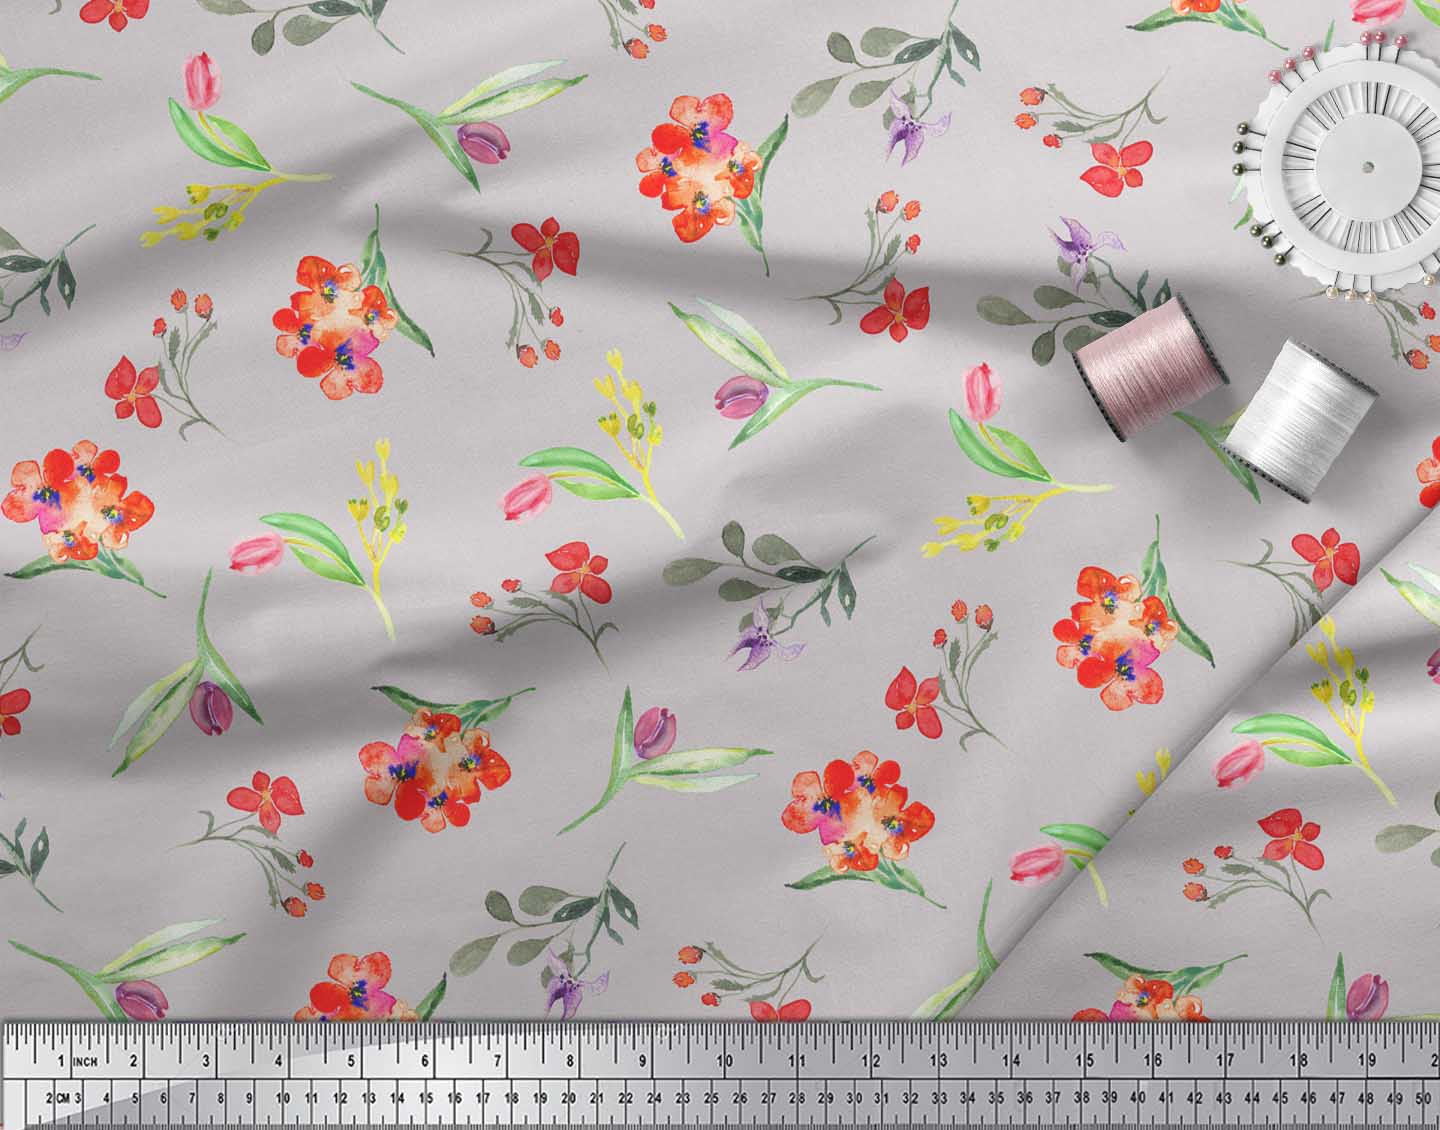 Soimoi-Gray-Cotton-Poplin-Fabric-Leaves-amp-Tulip-Floral-Printed-Fabric-4ks thumbnail 3